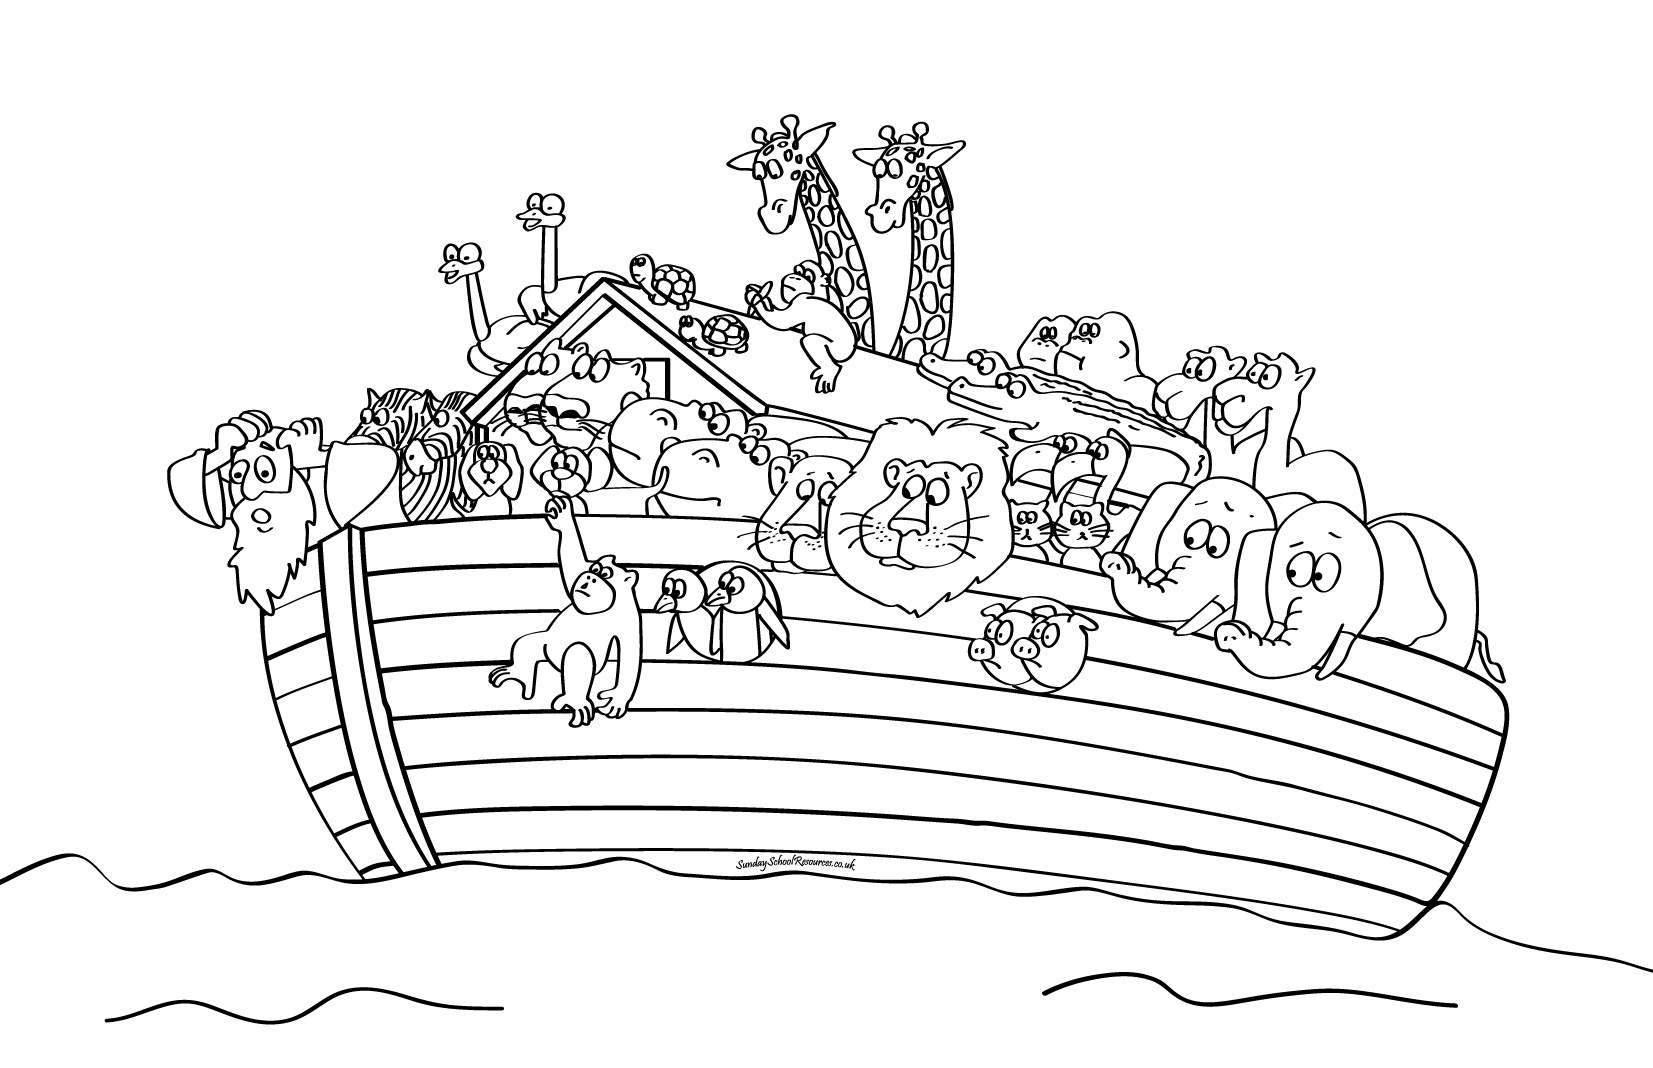 Best ideas about Noah'S Ark Free Coloring Pages . Save or Pin Noah s Ark Coloring Pages Download Free Coloring Books Now.